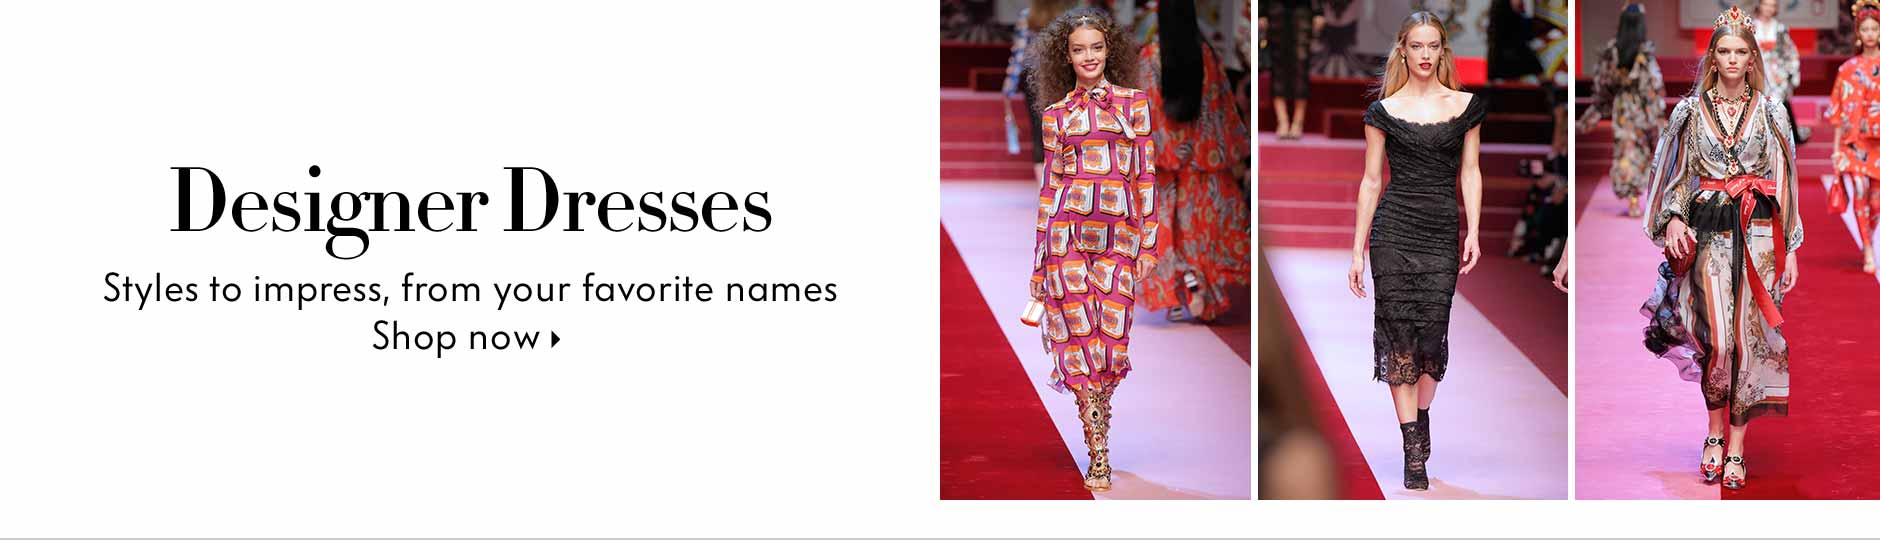 Designer Dresses - Styles to impress, from your favorite names